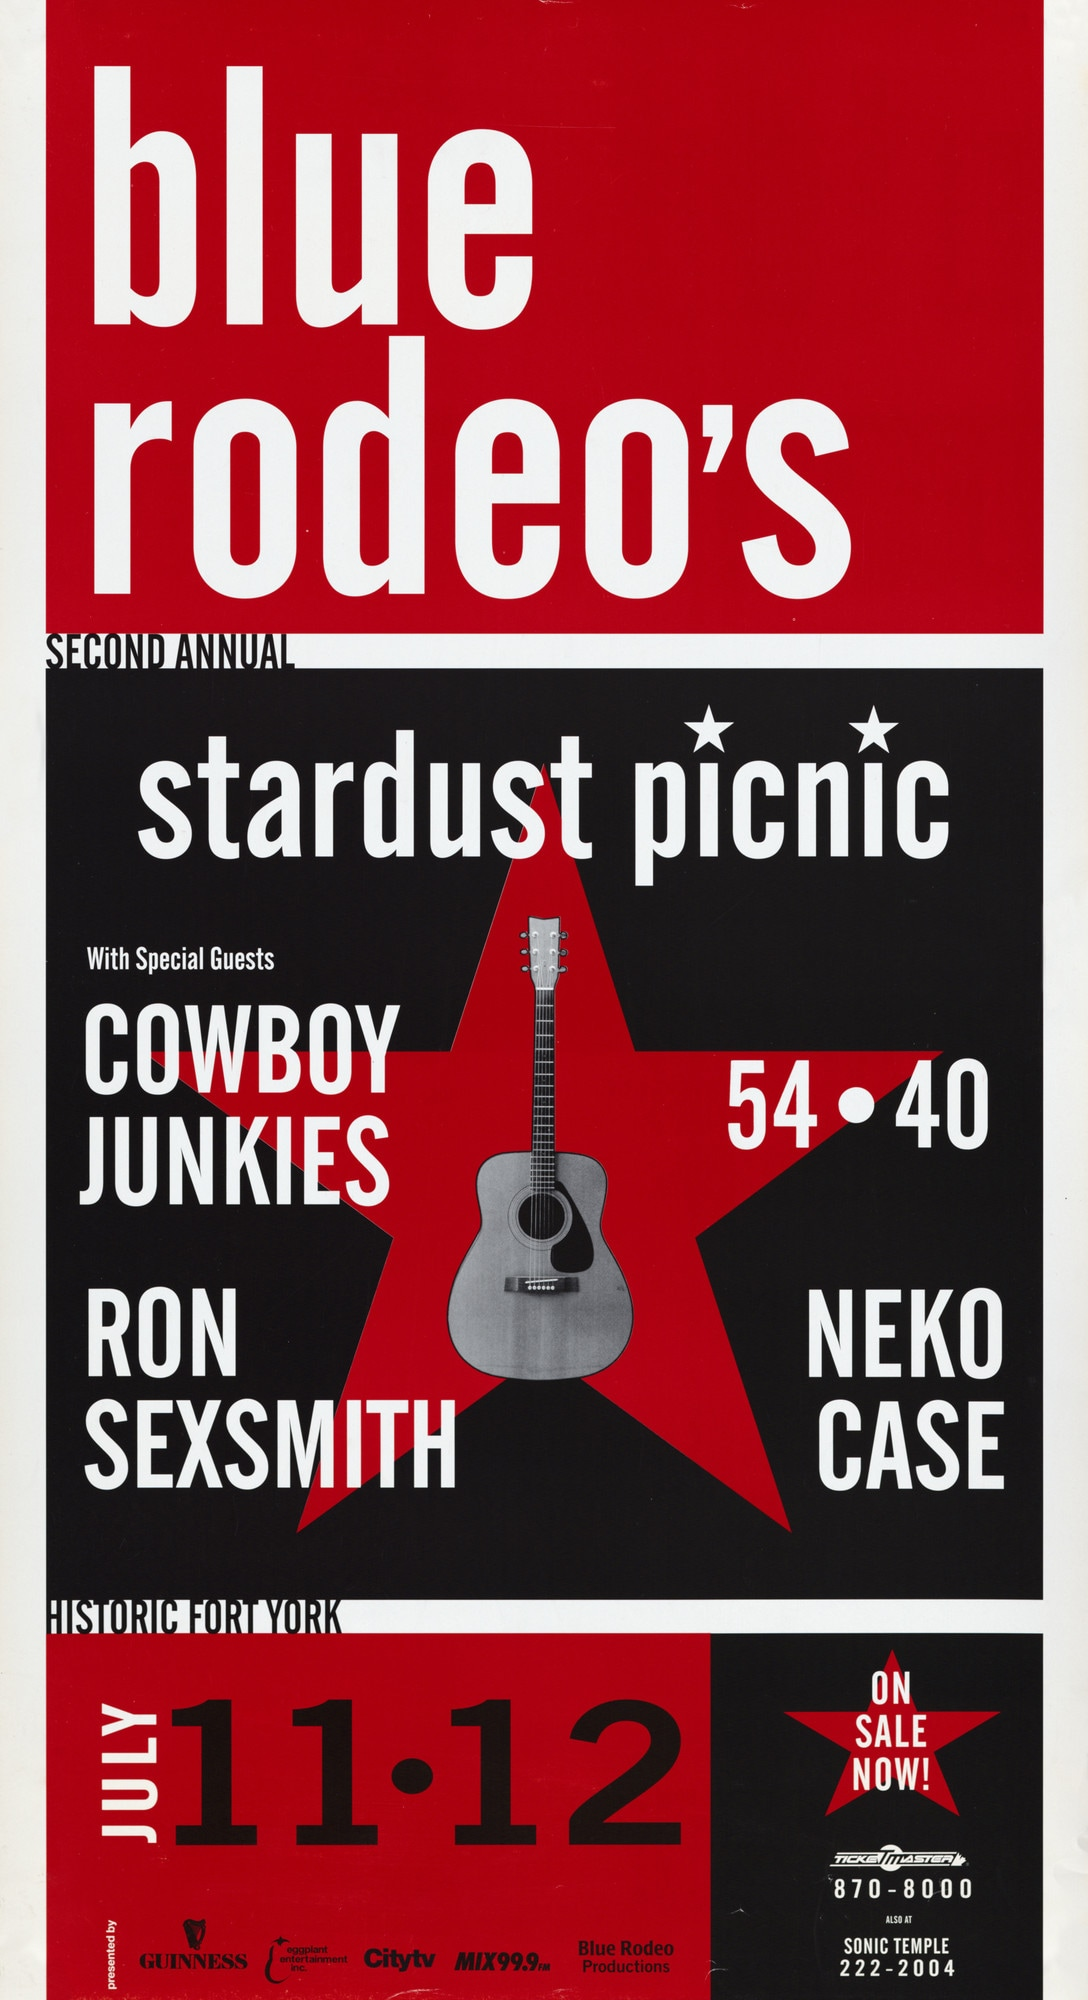 "Poster split into three horizontal panels featuring three colours (red, white and black). The top panel reads ""blue rodeo's / Second Annual"". The middle panel reads ""stardust picnic""; on the left side, ""With Special Guests / Cowboy Junkies / Ron Sexsmith""; on the right side ""54 - 40 / Neko Case""; in the center of this panel is a guitar and a star. Finally, on the bottom panel reads ""historic Fort York / July 11-12,"" to the left ""On Sale now!"" below are logos of sponsors and phone numbers for Ticketmaster and Sonic Temple."